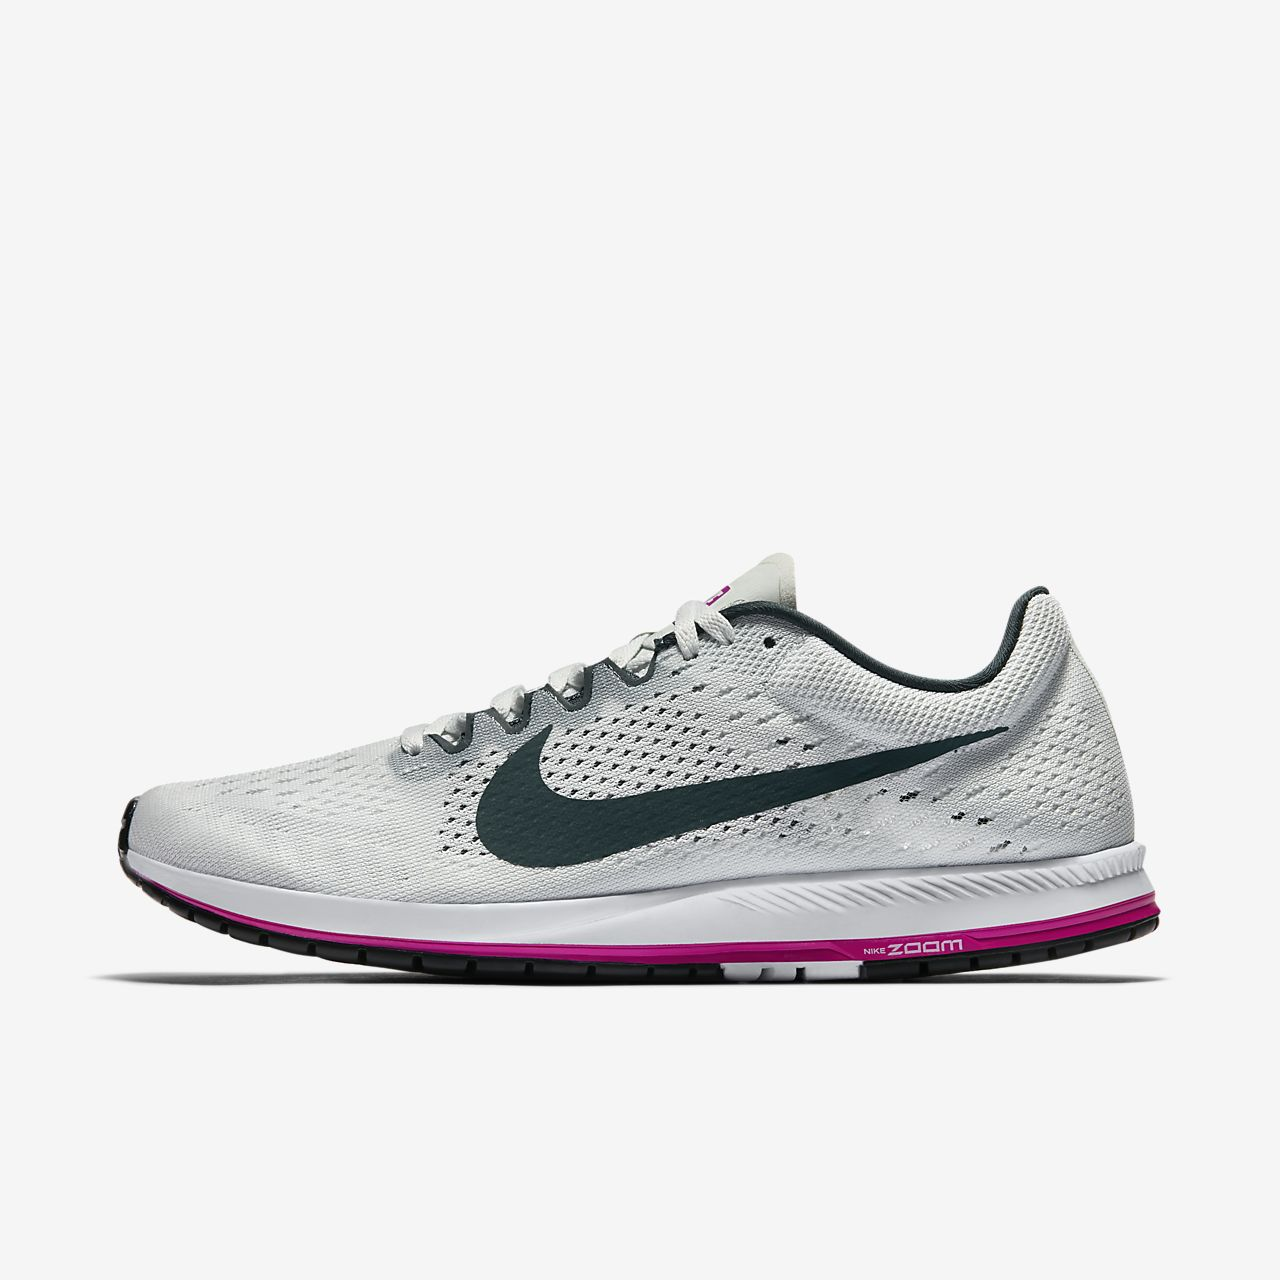 Nike Zoom Streak Light Extra- 9.5 Mens